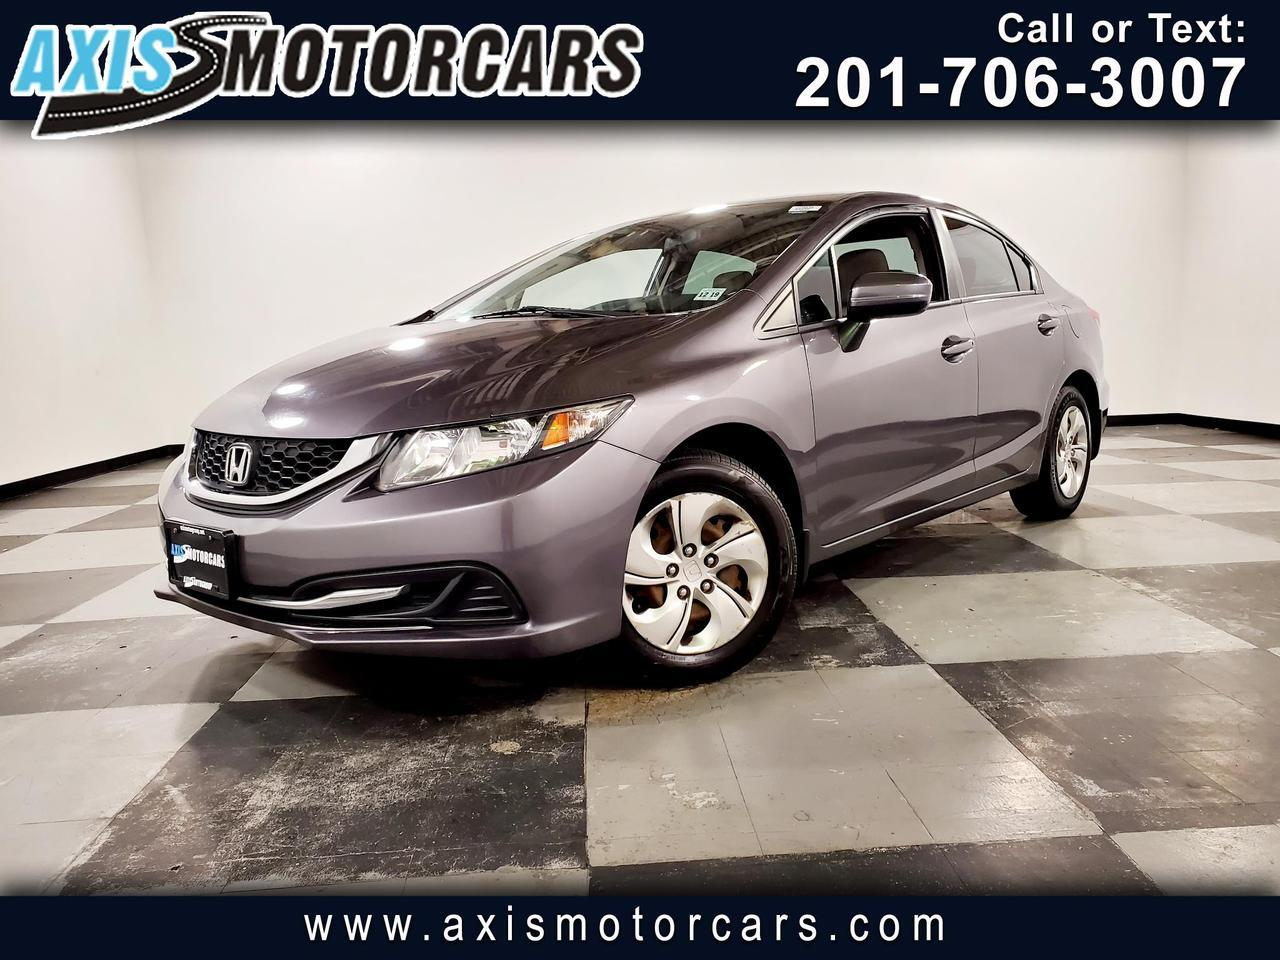 2014 Honda Civic 4dr CVT LX Jersey City NJ